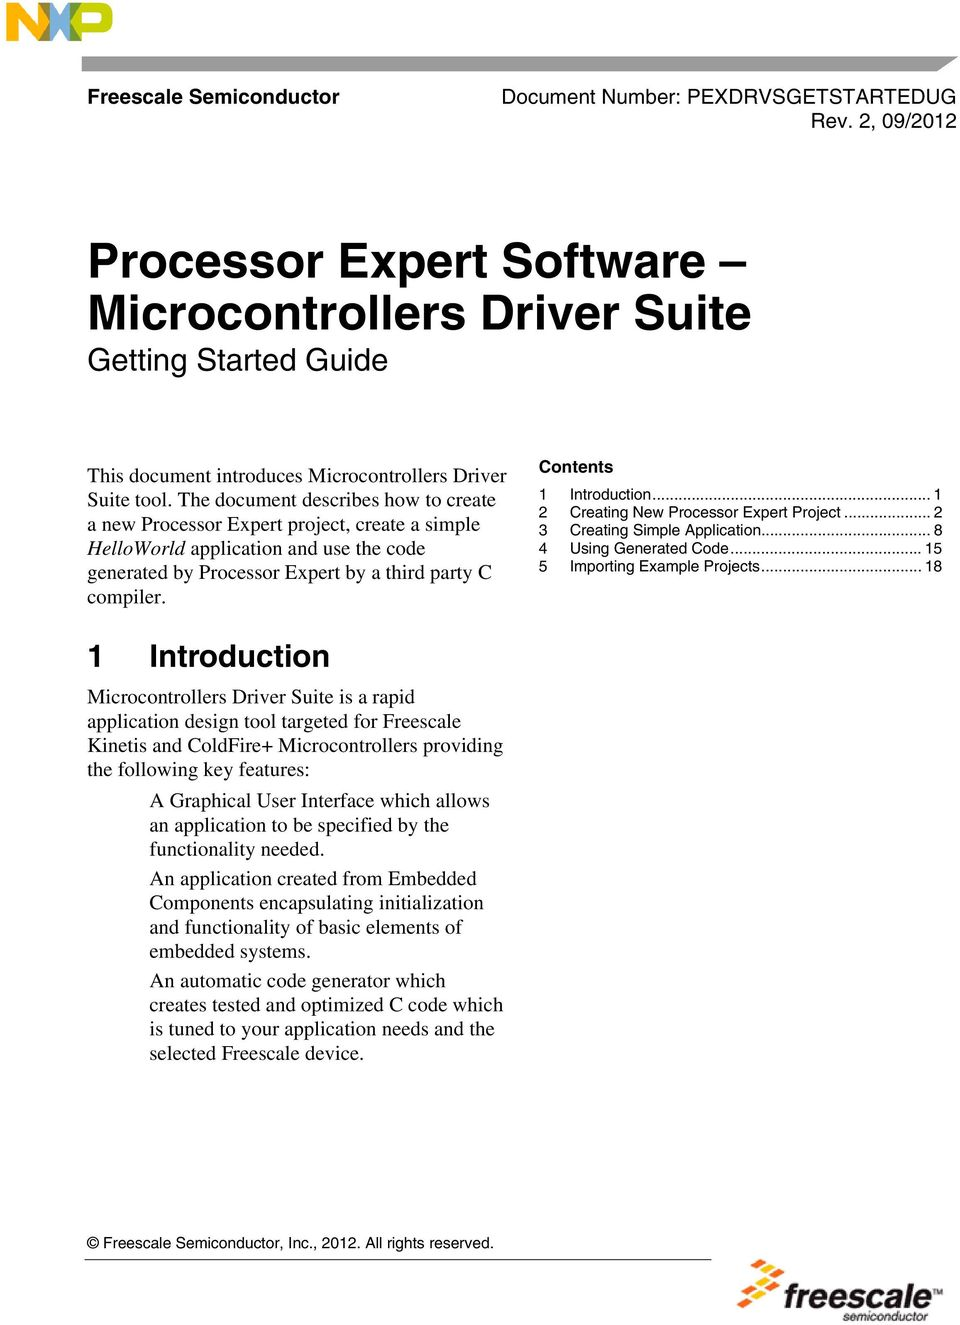 The document describes how to create a new Processor Expert project, create a simple HelloWorld application and use the code generated by Processor Expert by a third party C compiler.